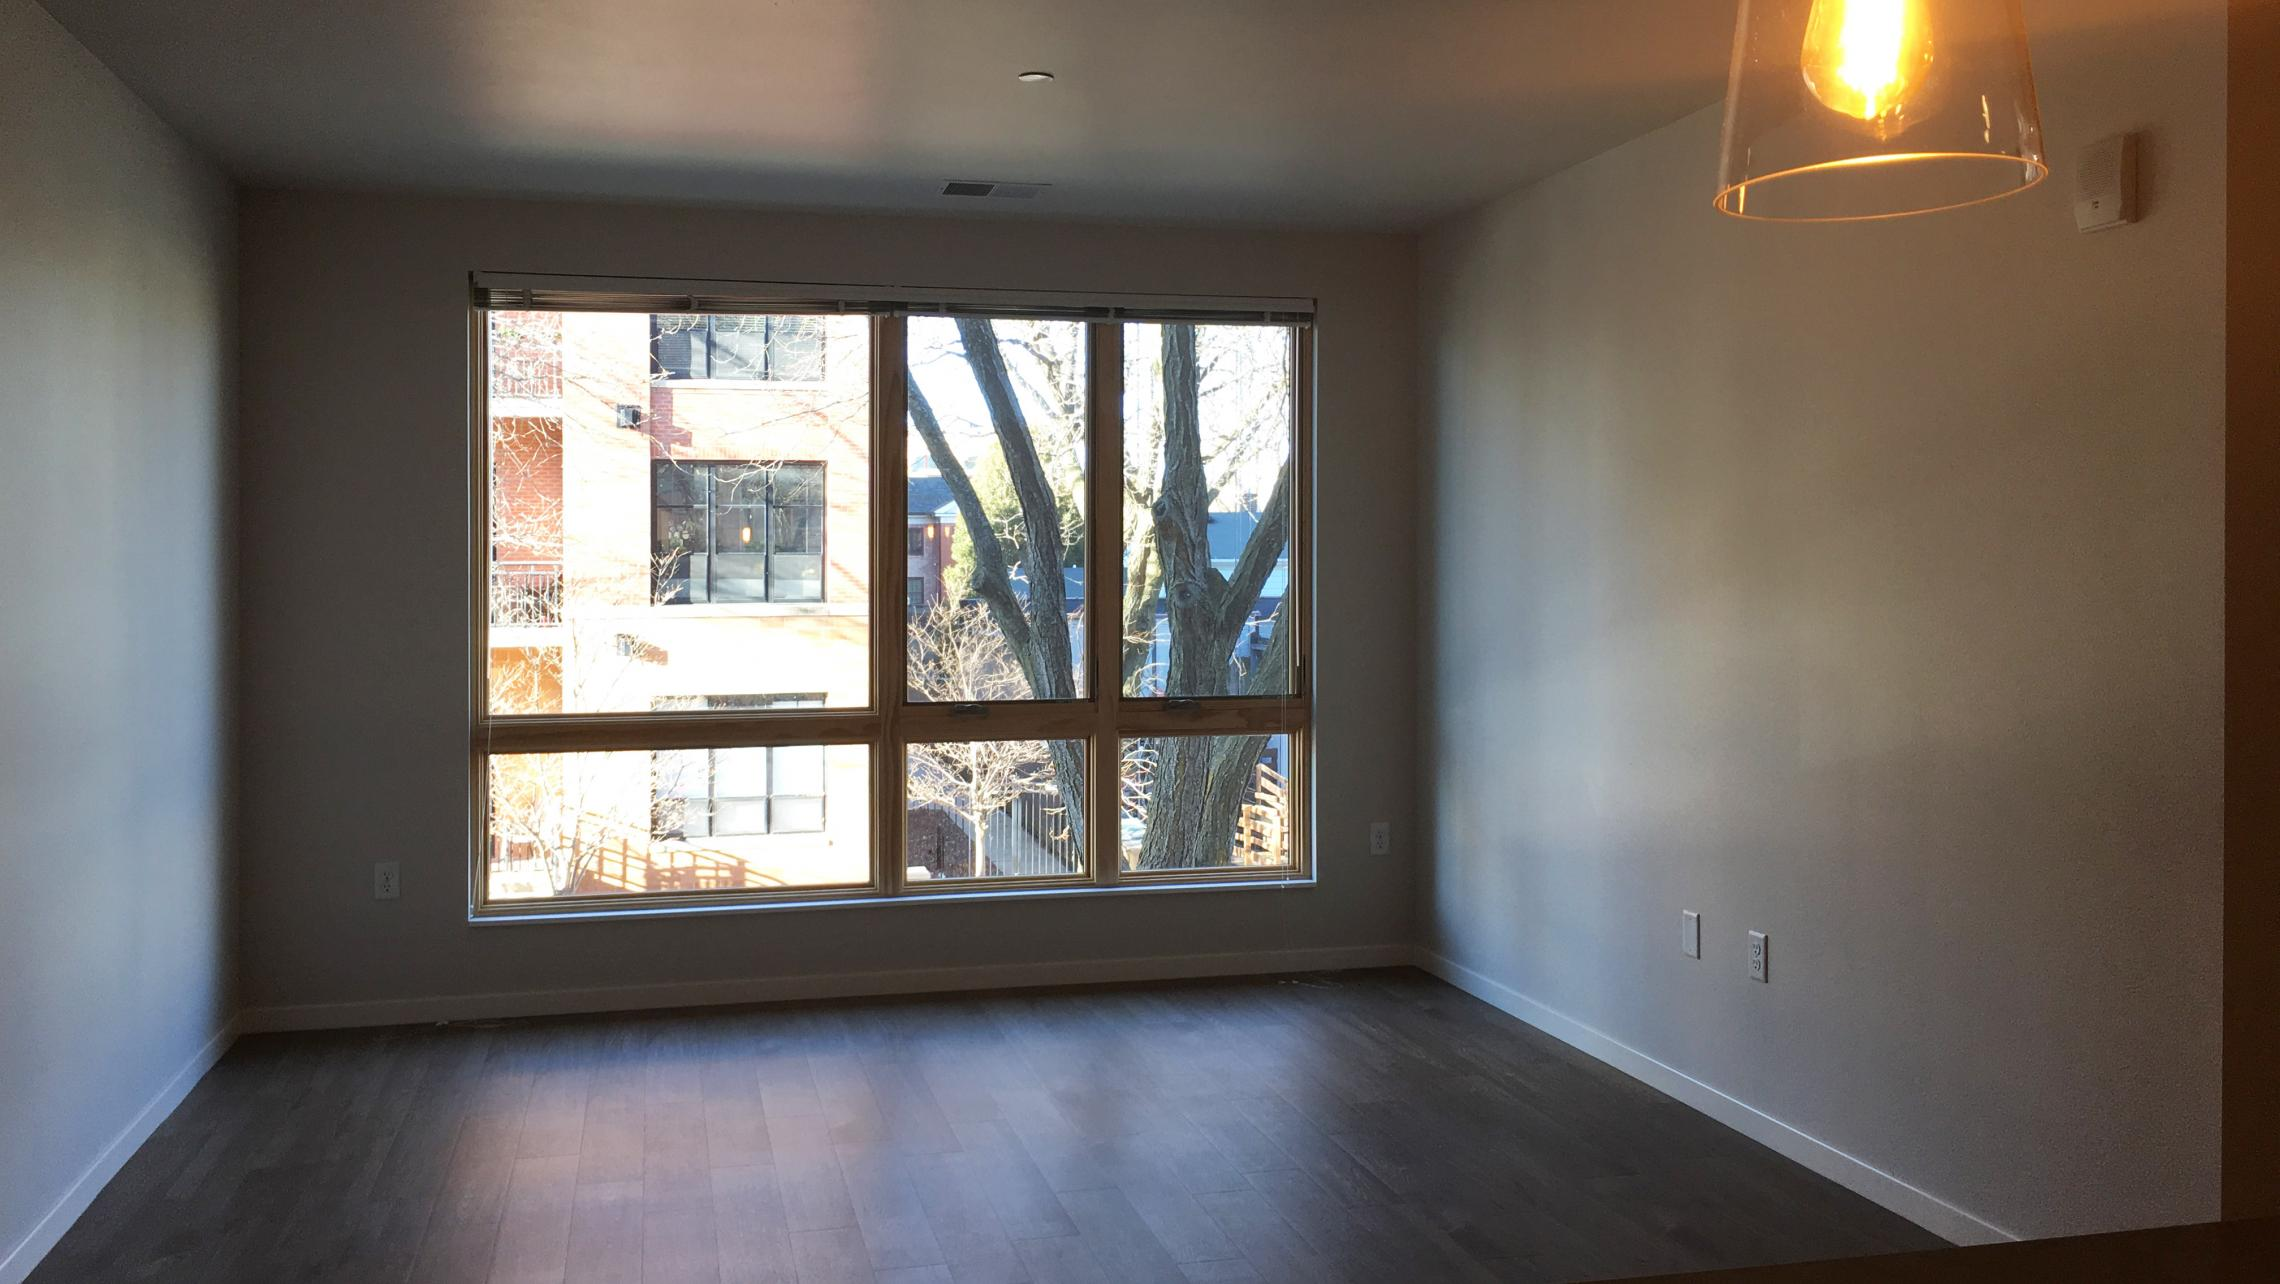 Quarter-Row-Apartment-217-ADA-Two-Bedroom-Bathroom-Modern-Design-Upscale-Fitness-Terrace-Lounge-Gym-Dogs-Cats-Downtown-Madison-Bike-Path-The-Yards